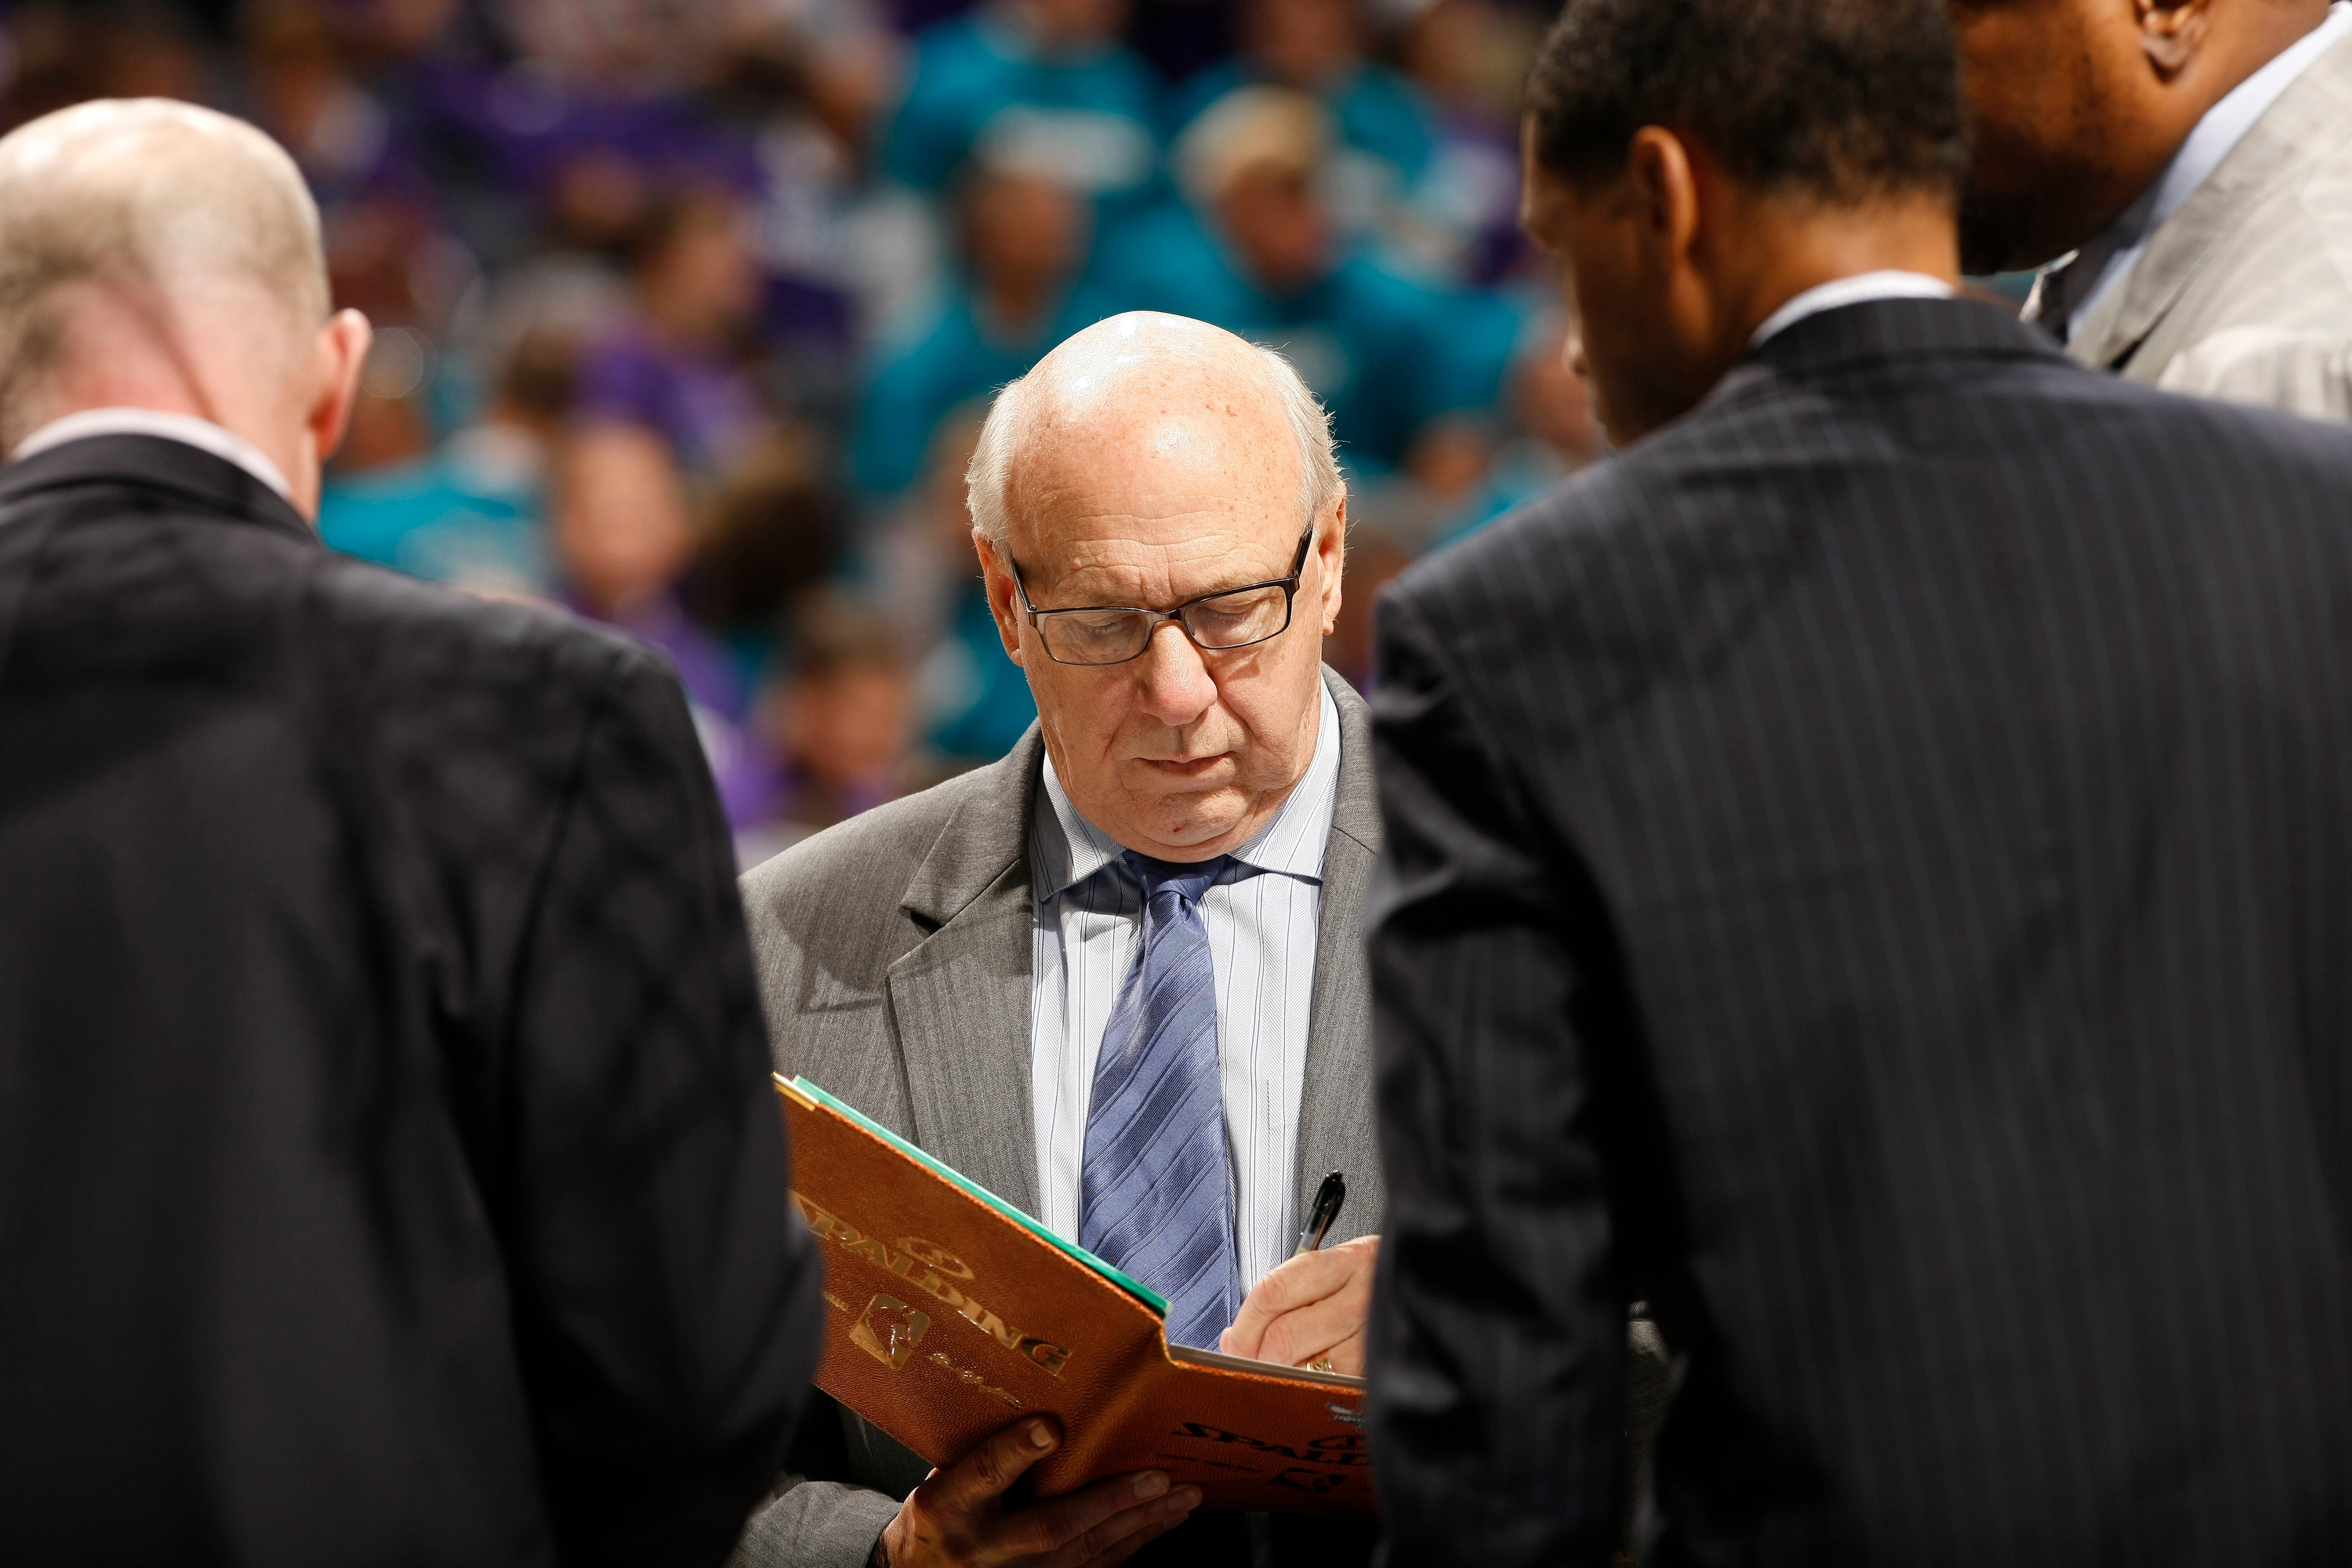 Bob Weiss Joins Altitude 950 as the Newest Assistant Coach